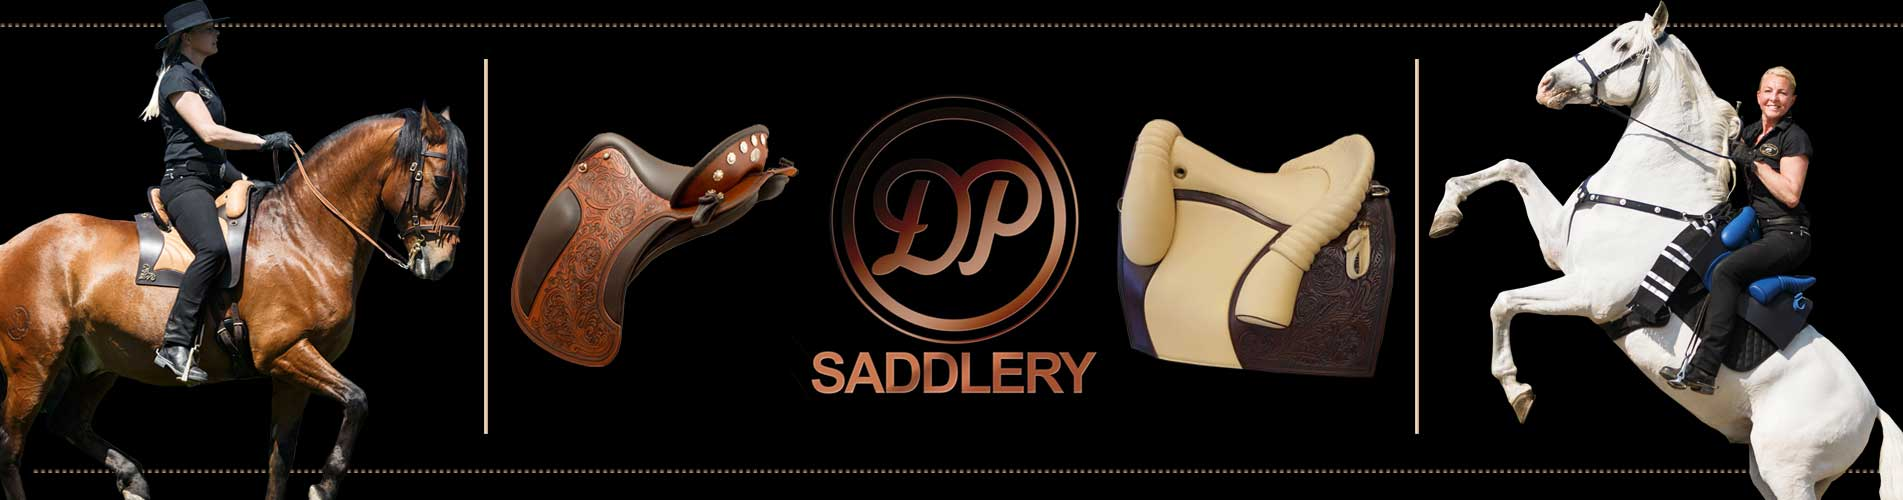 Dp Saddlery Saddles For Sale Canada